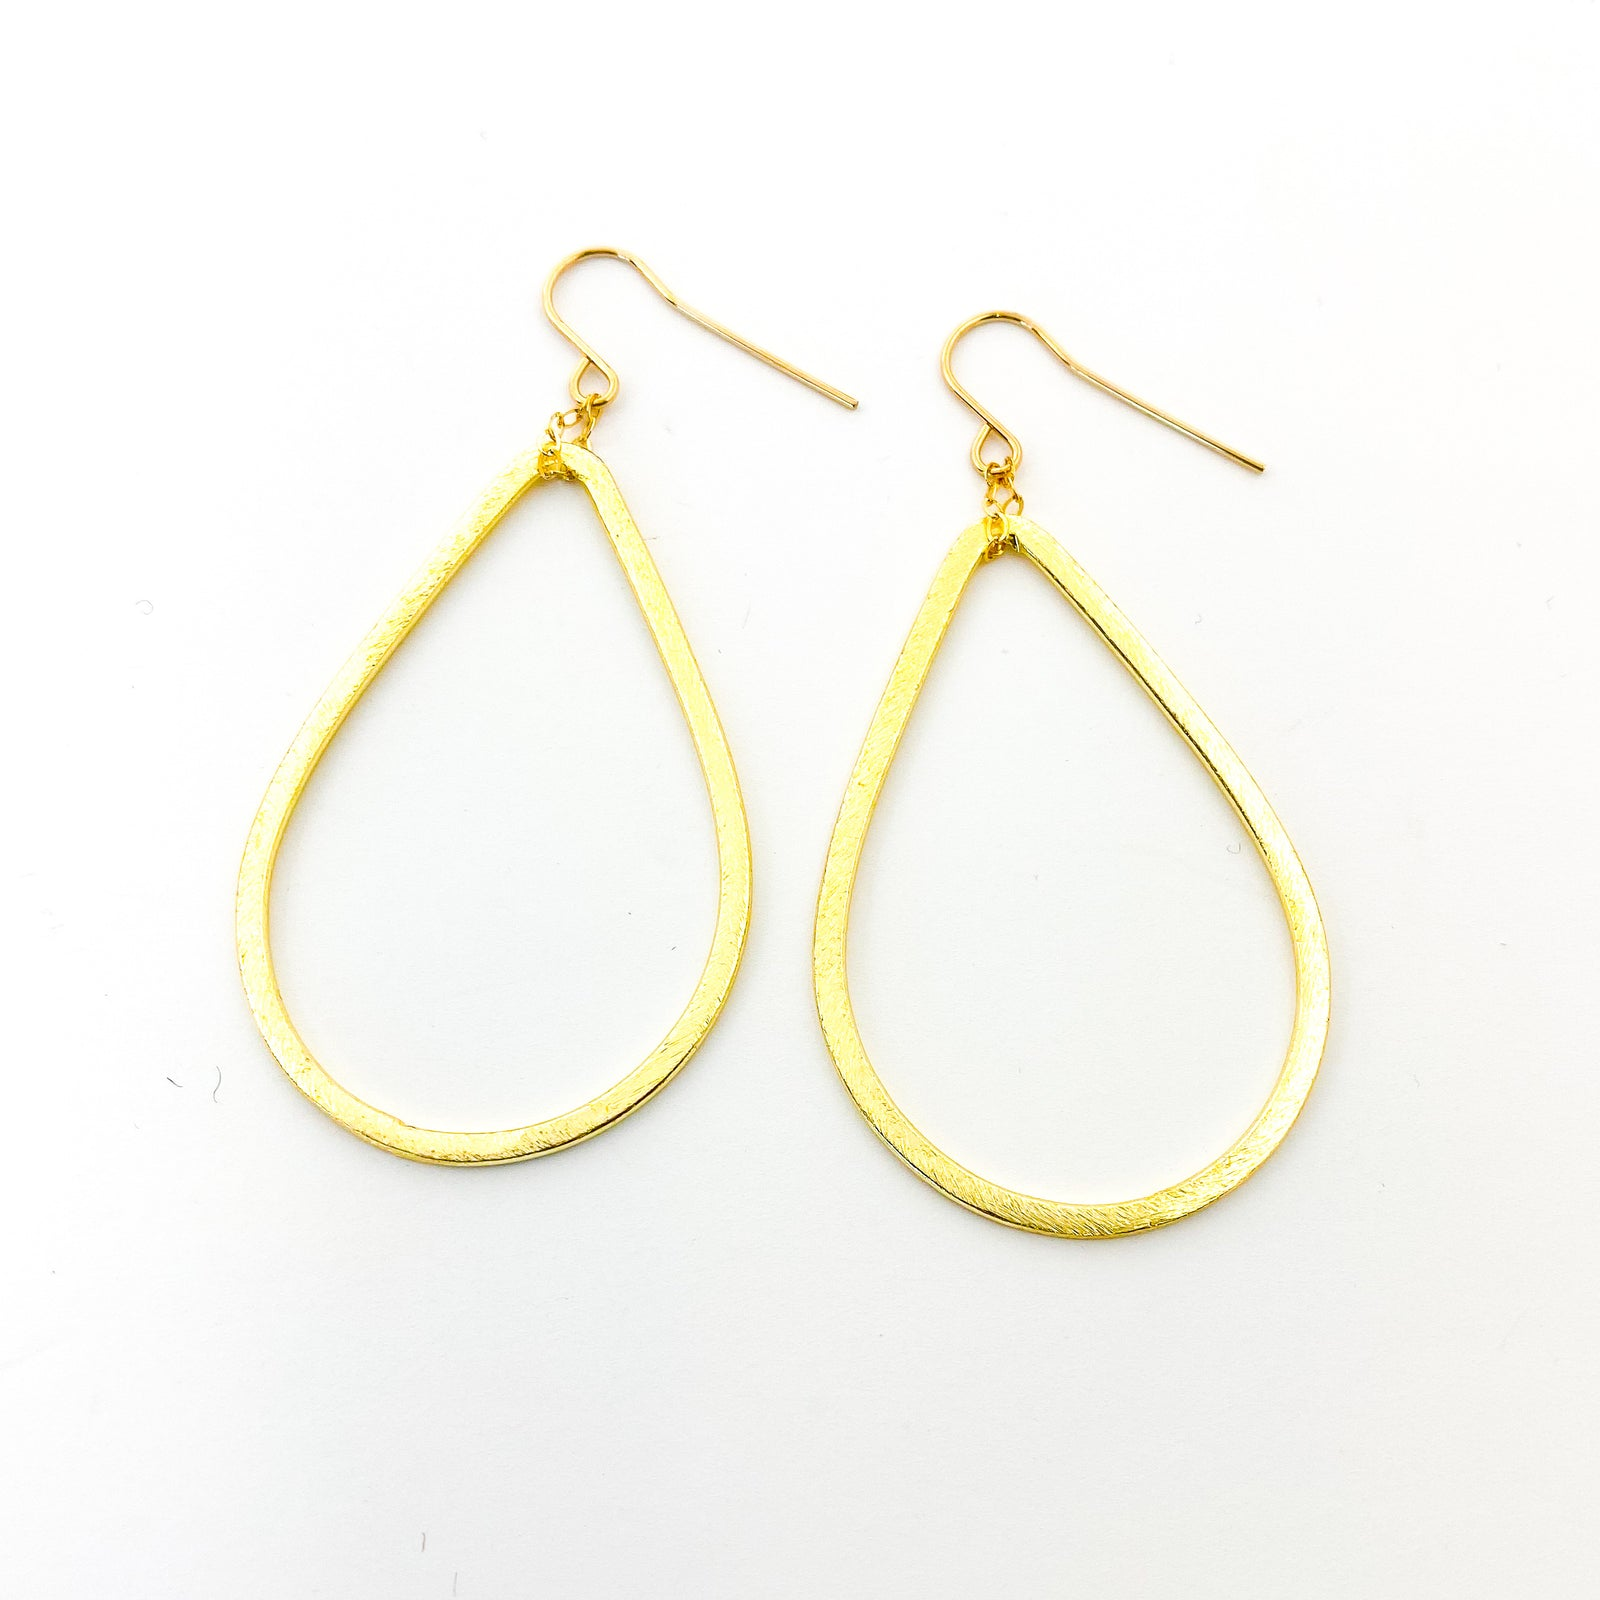 BRUSHED HANGING OPEN DROP EARRINGS | 14K GOLD-FILLED | SIZE OPTIONS